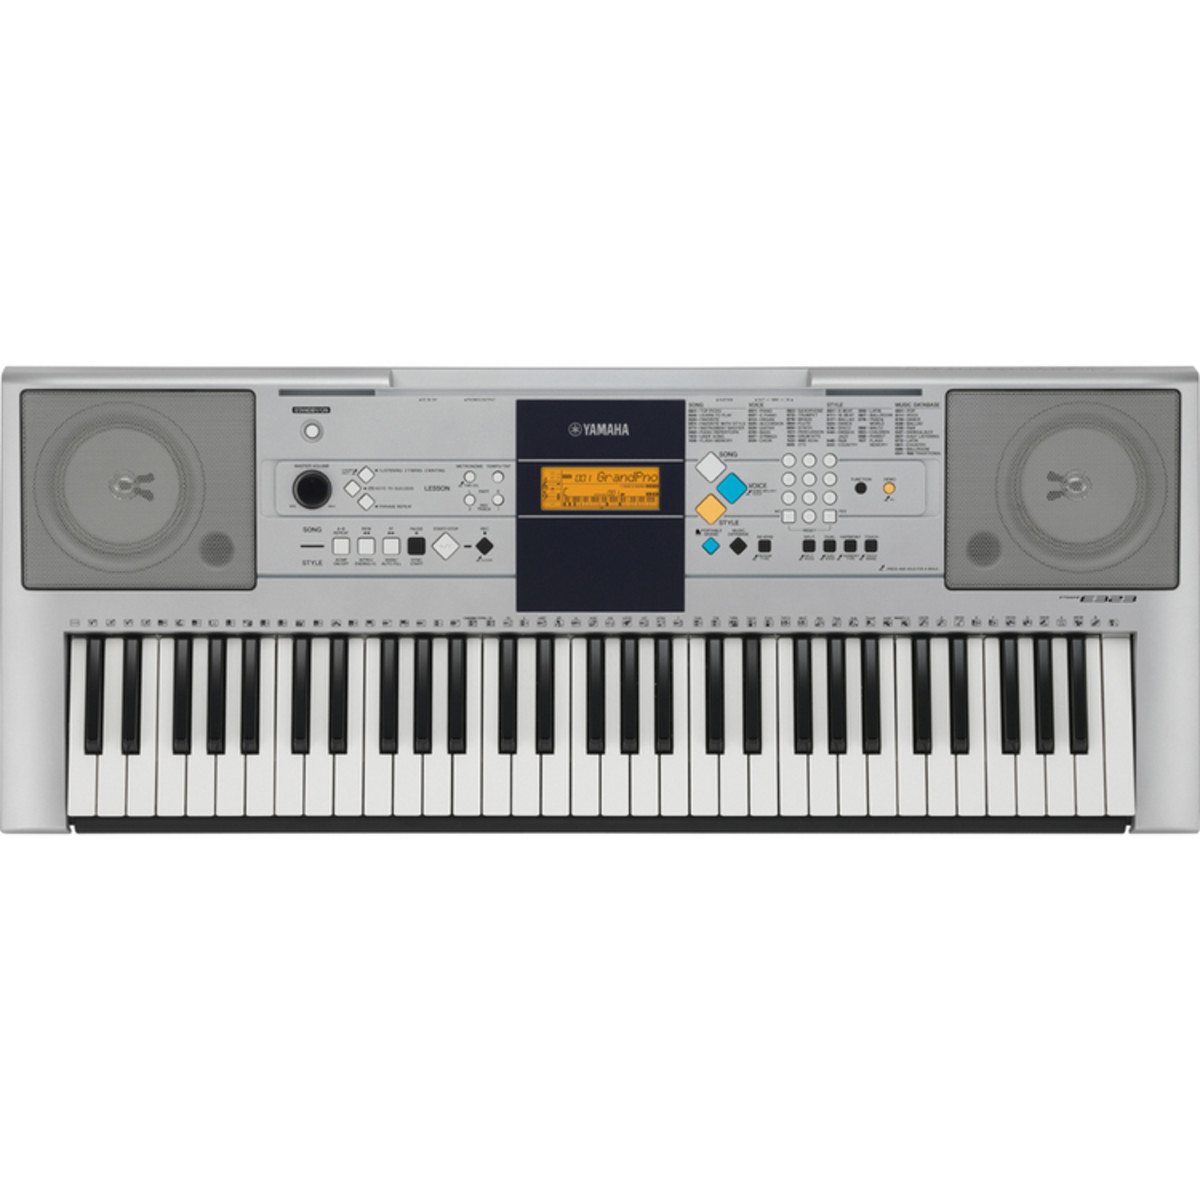 Disc yamaha psr e323 portable keyboard at for Yamaha learning keyboard